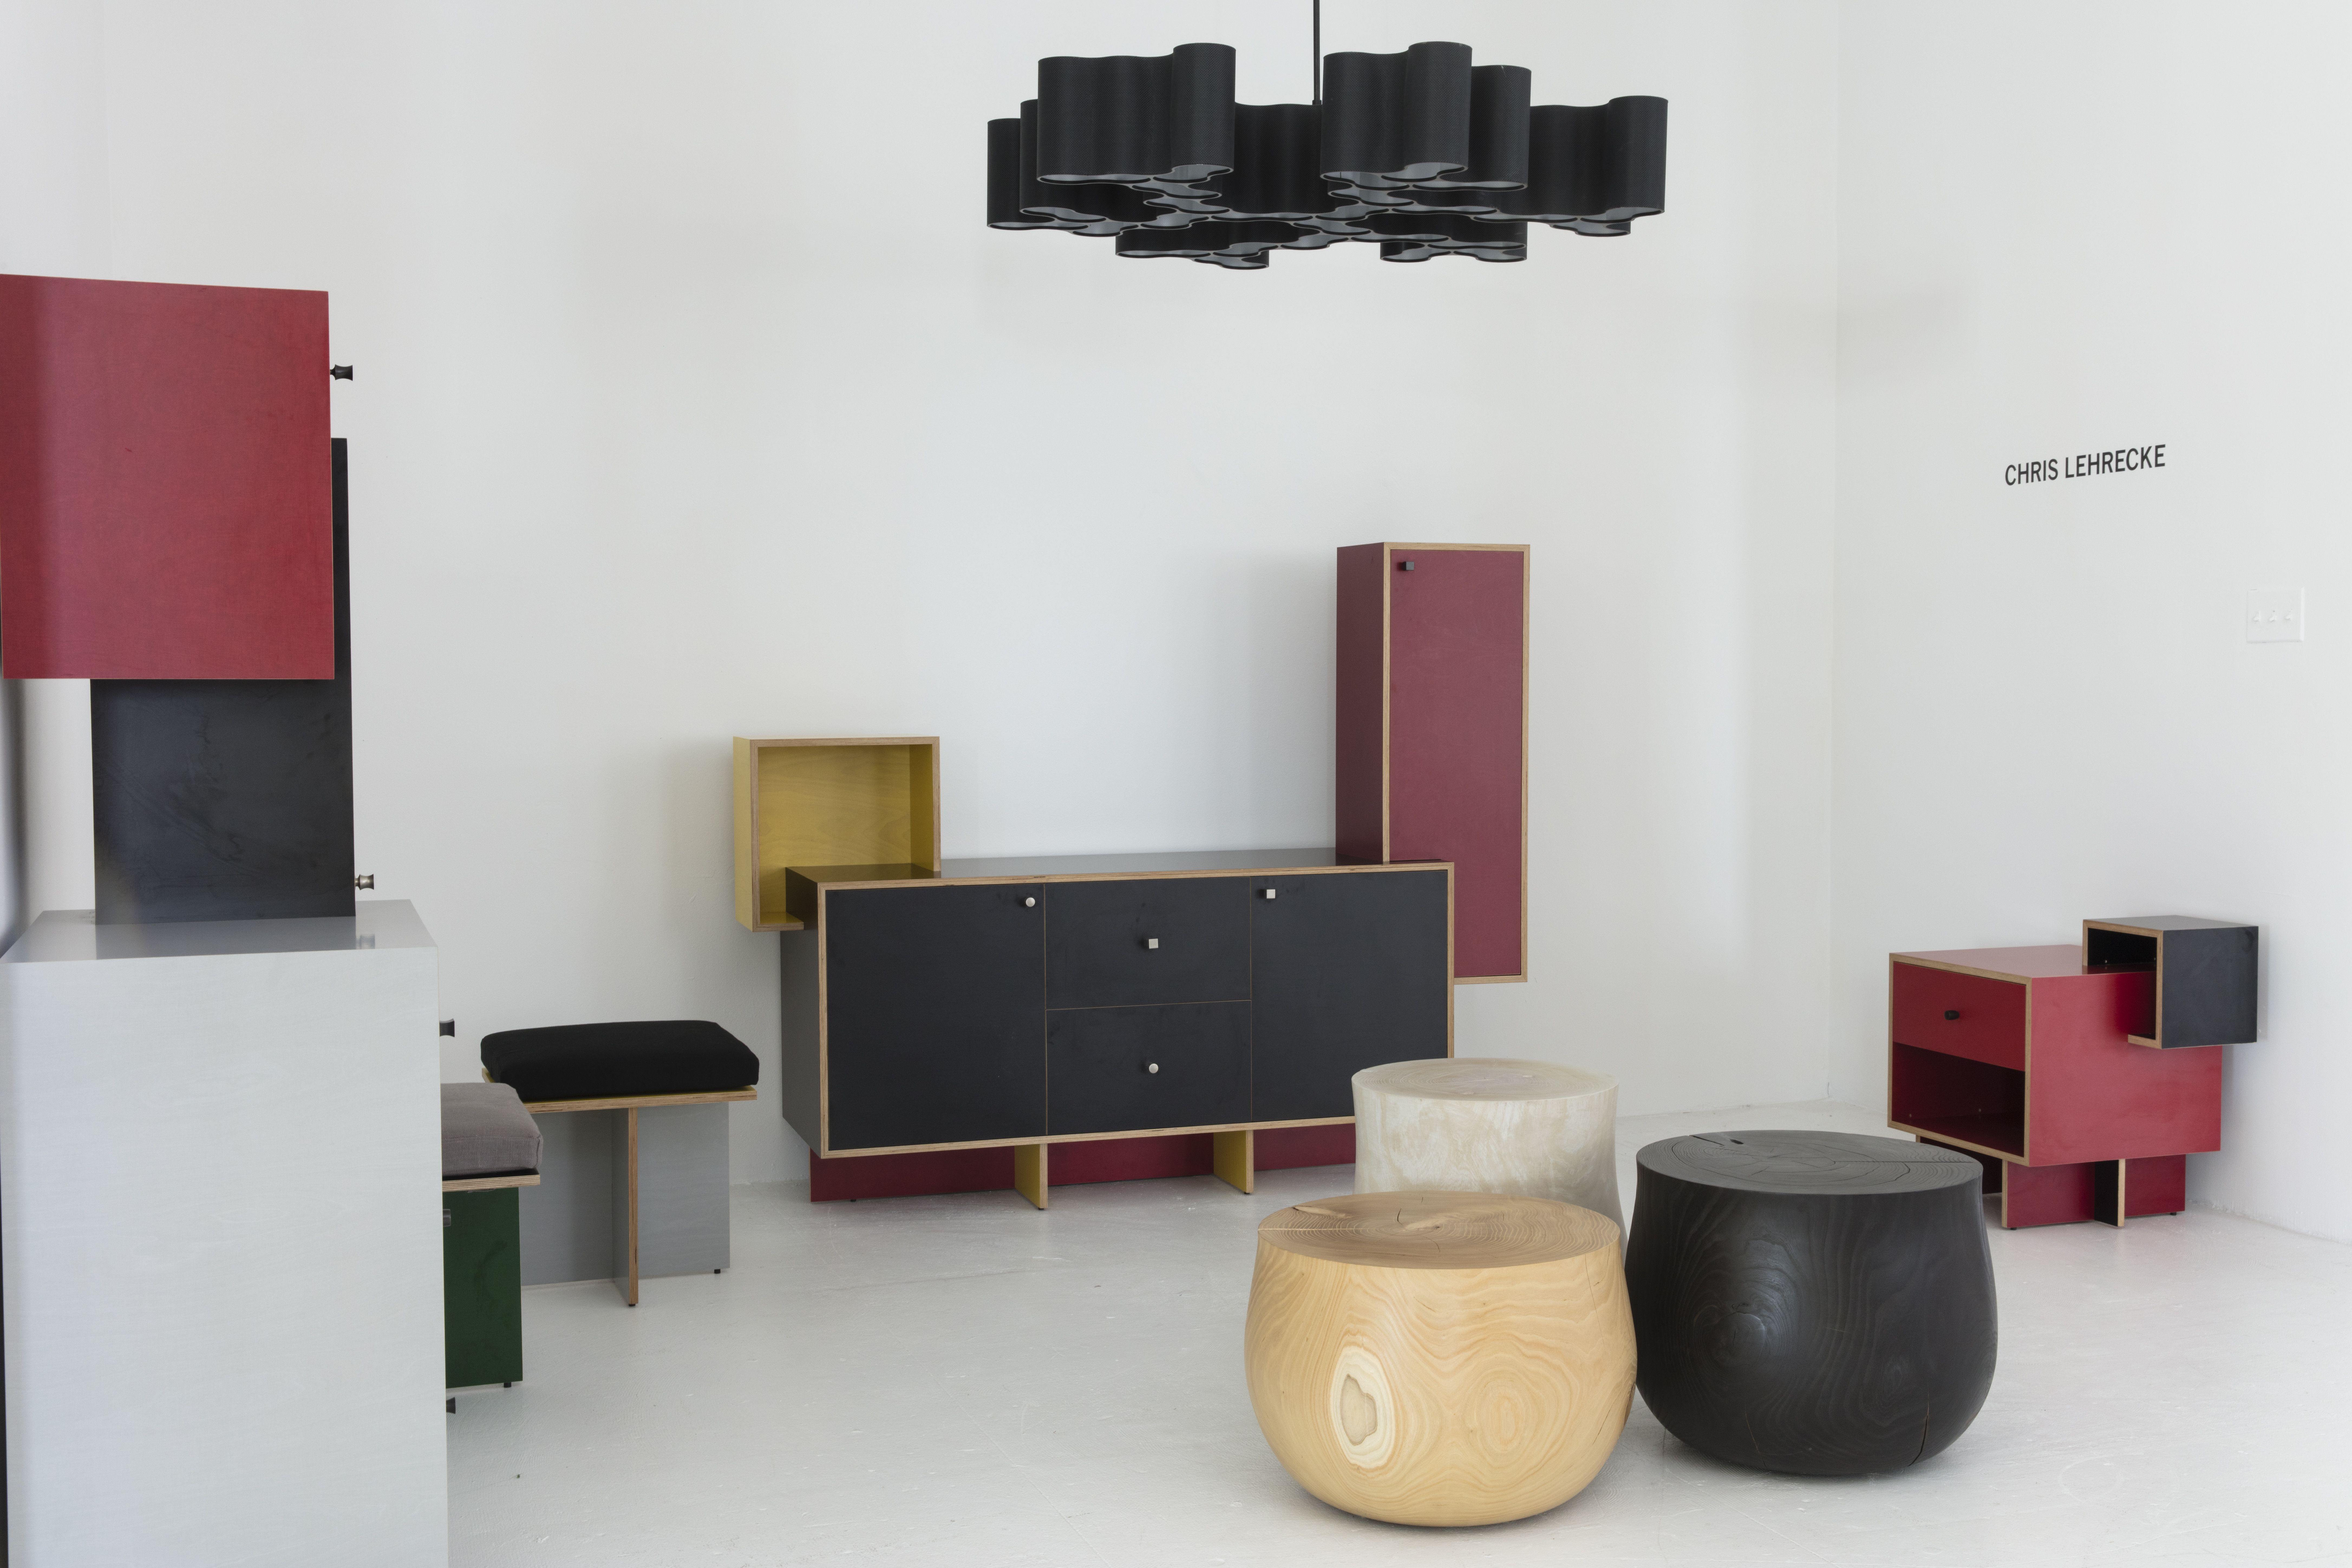 Chris Lehrecke's Weimar Collection is inspired by the